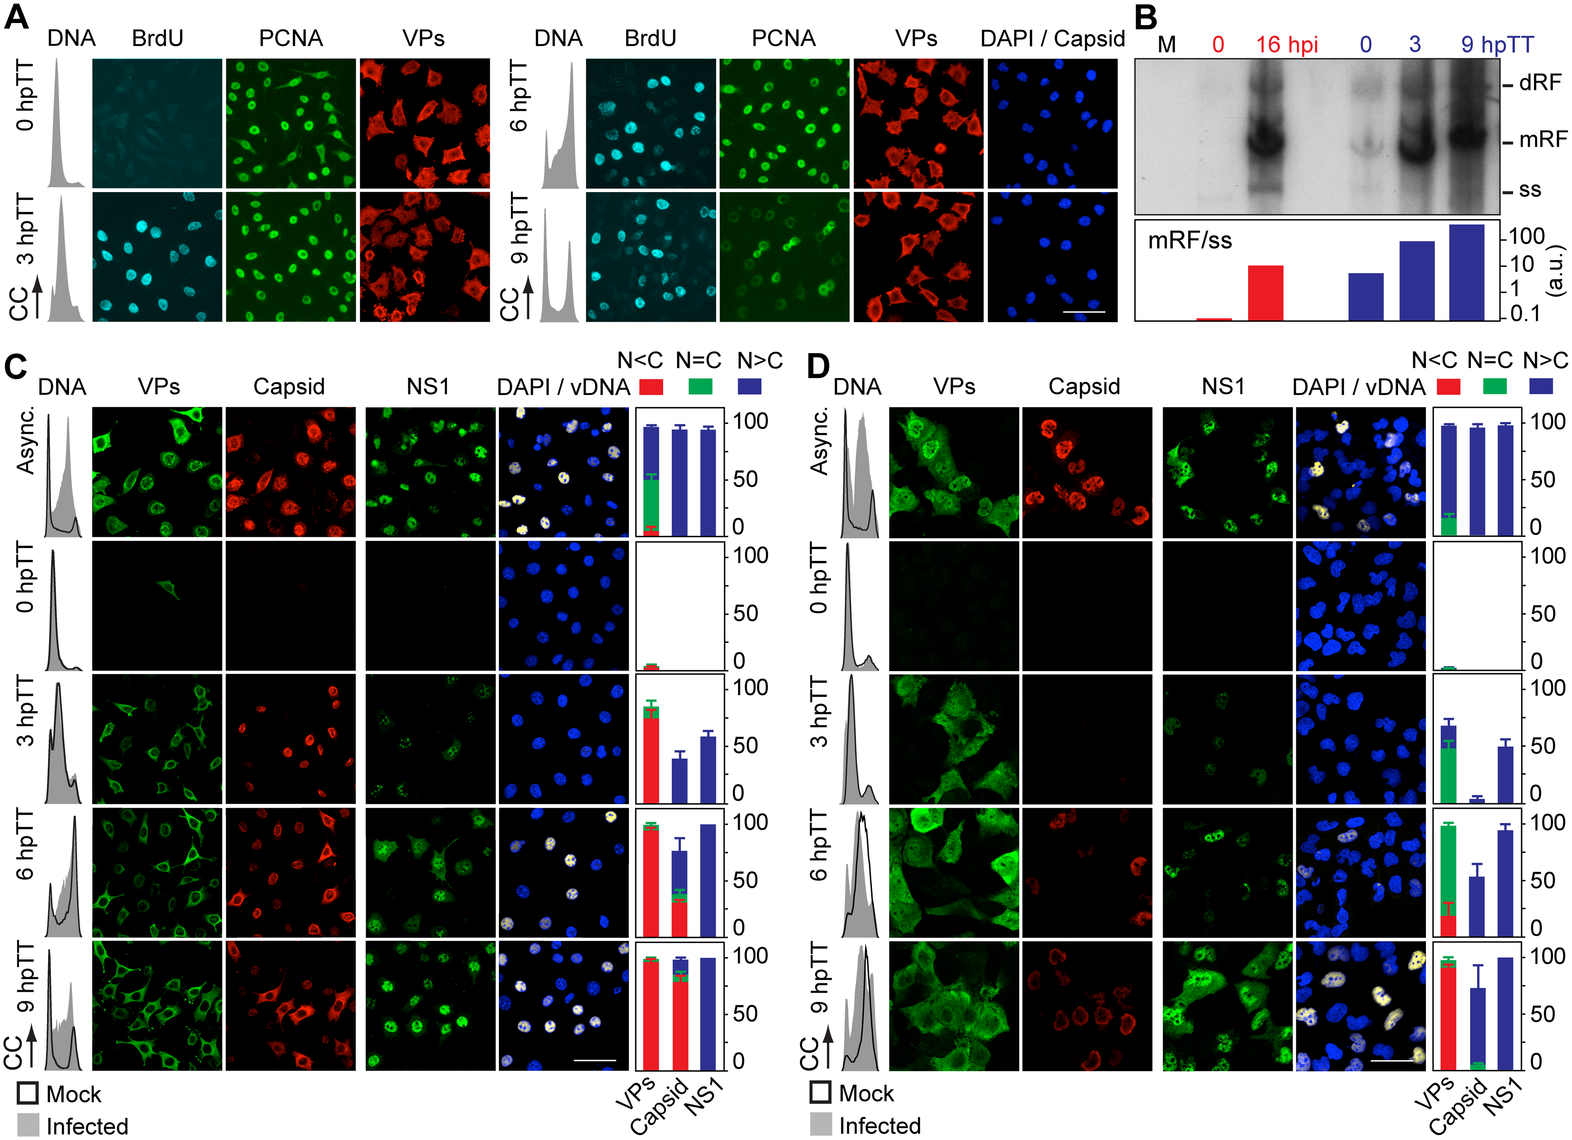 Stressing cellular DNA synthesis uncouples parvovirus genome replication from nuclear capsid assembly.